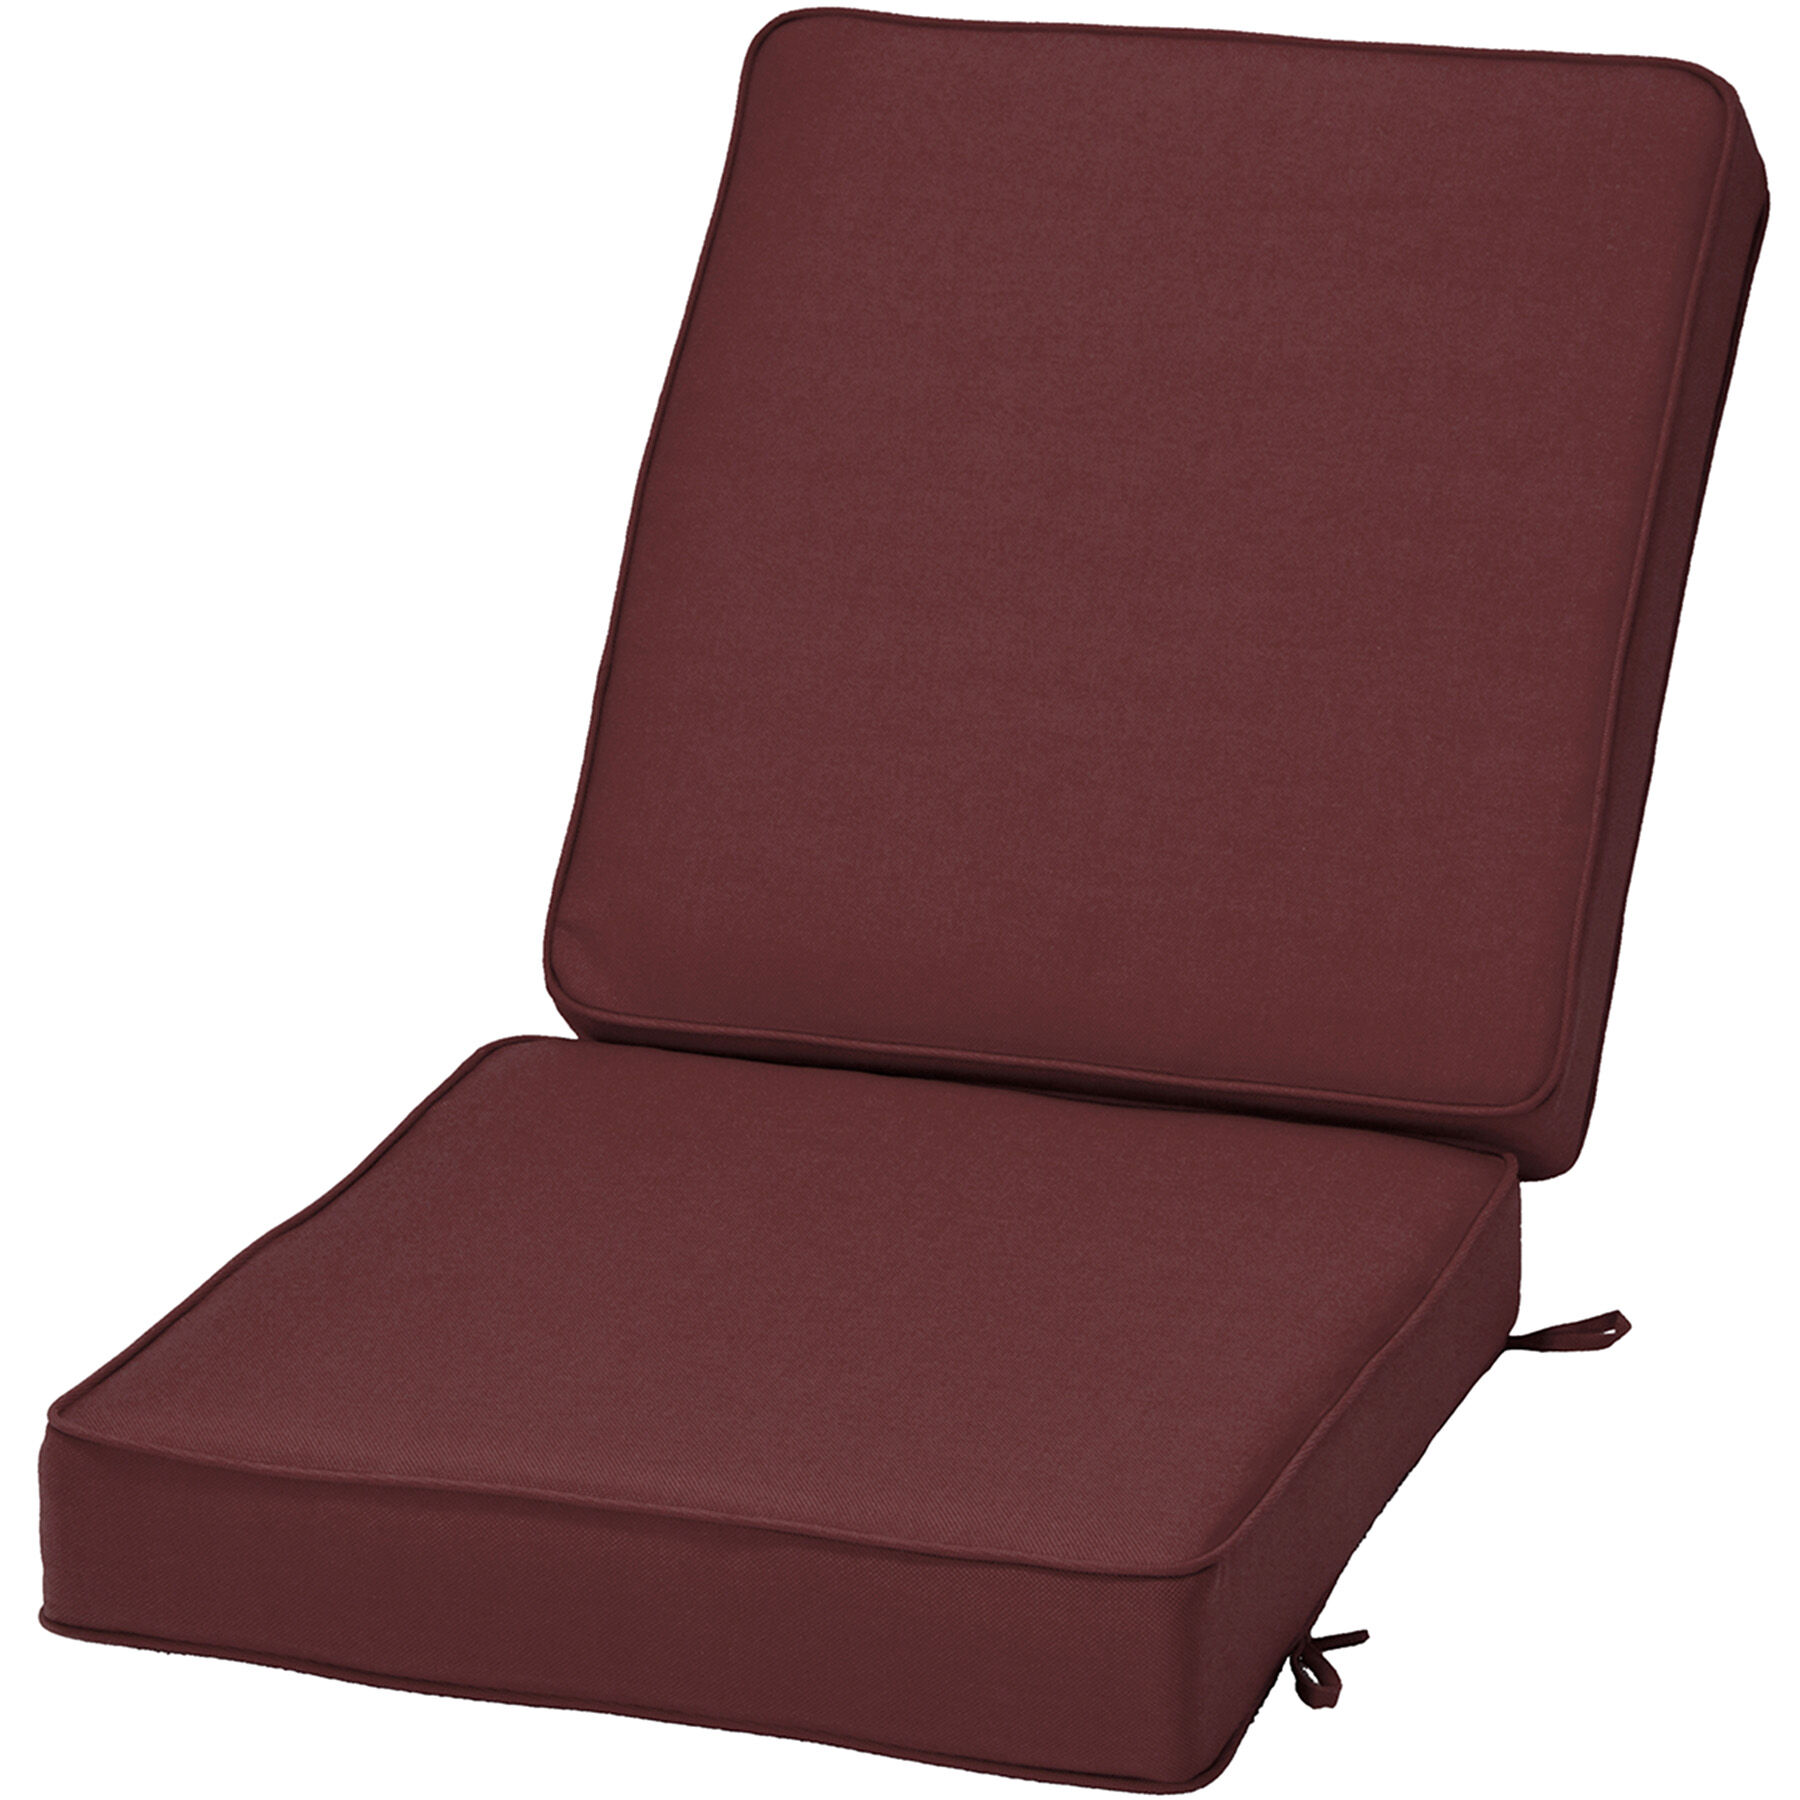 lounge chair cushions cheap recliner covers walmart outdoor at home product 124254430